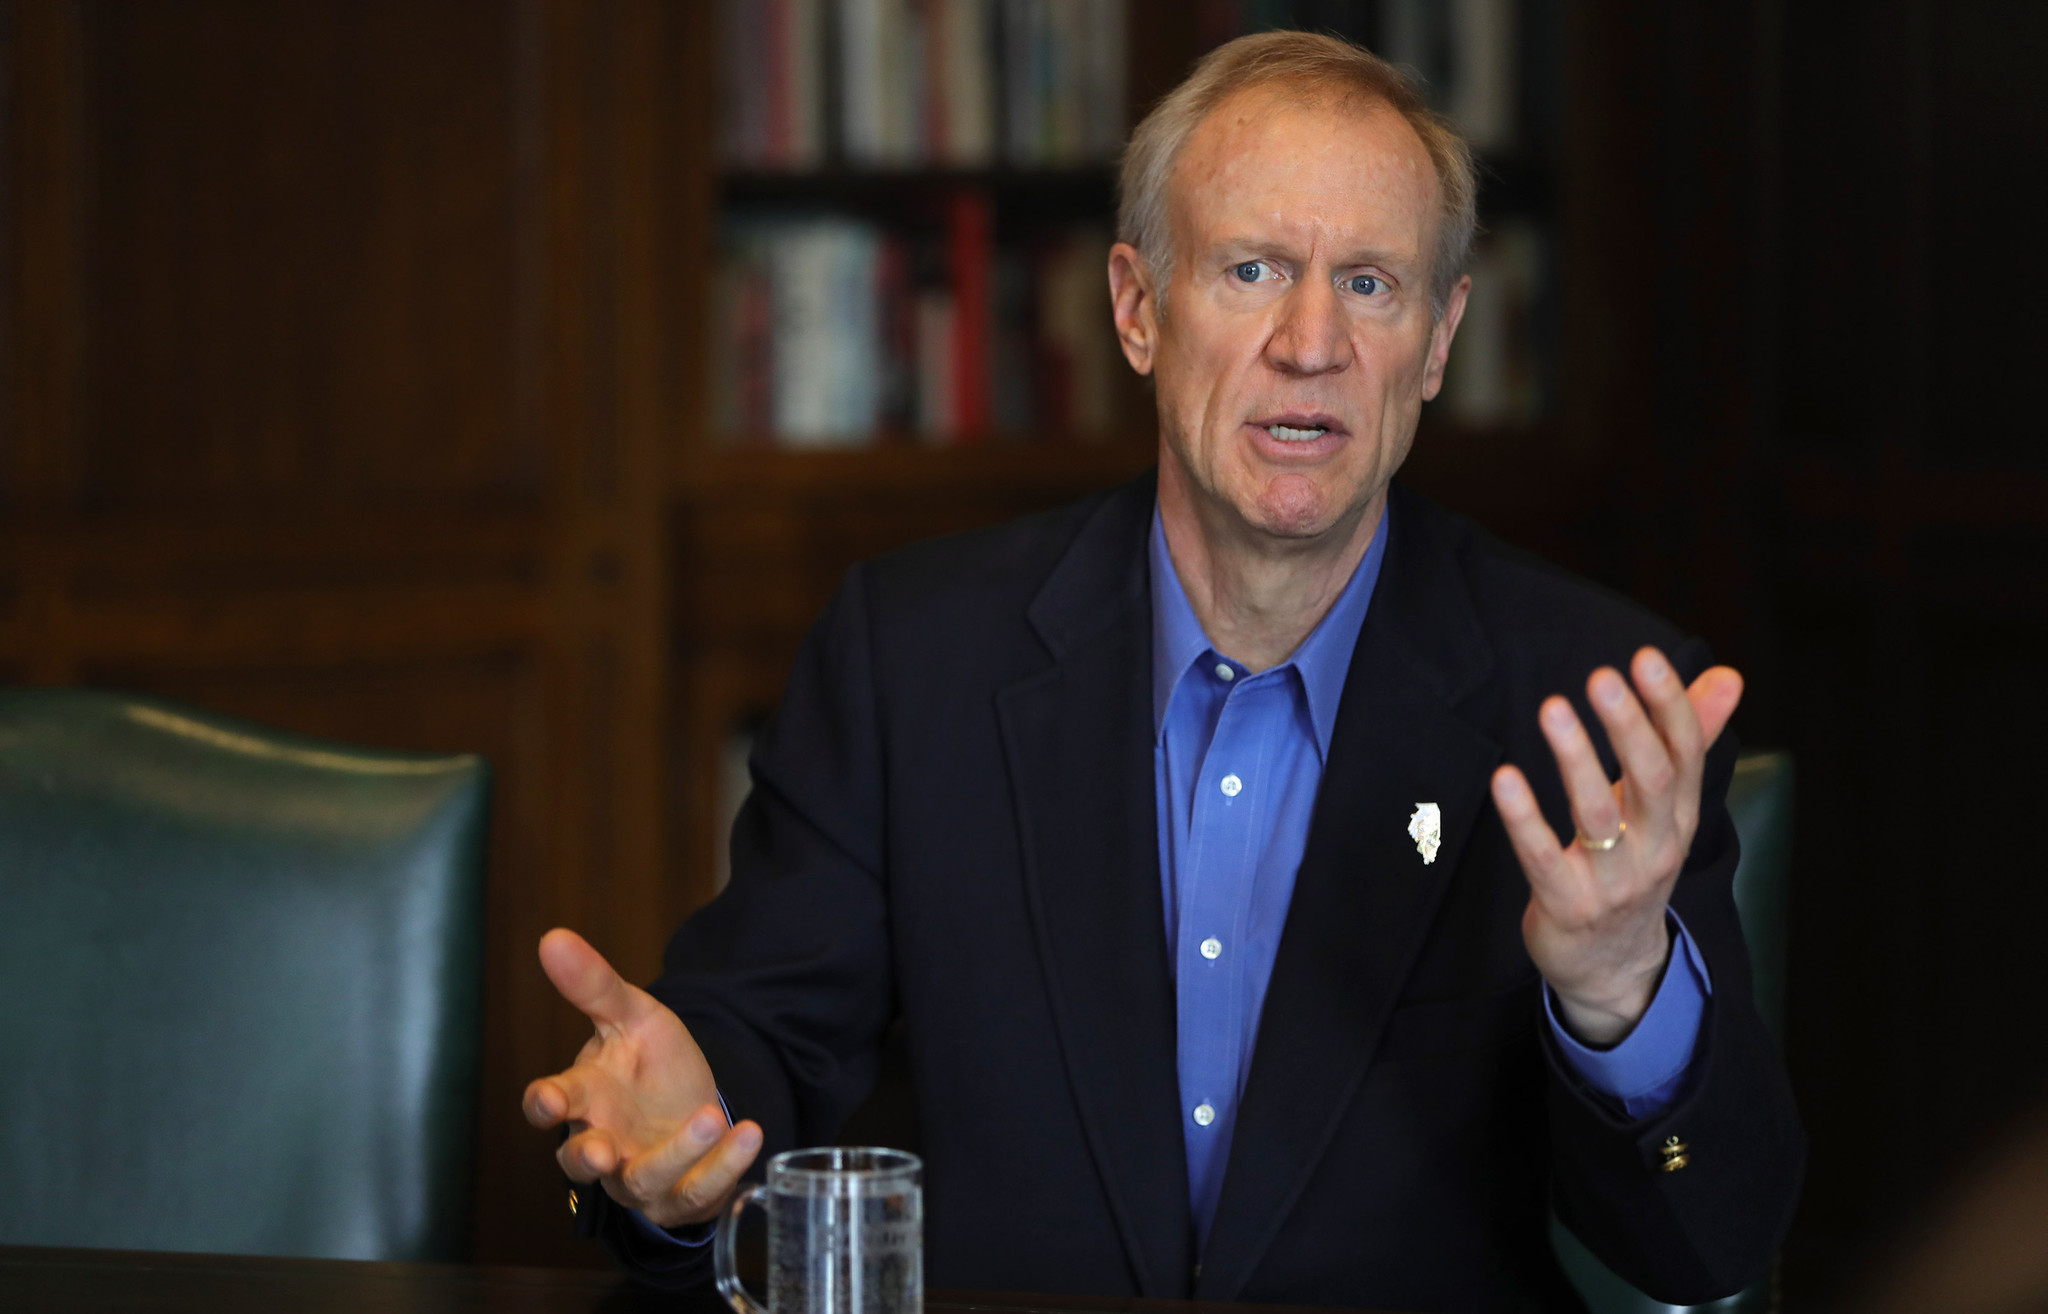 Illinois' Governor Race To Get Very Expensive